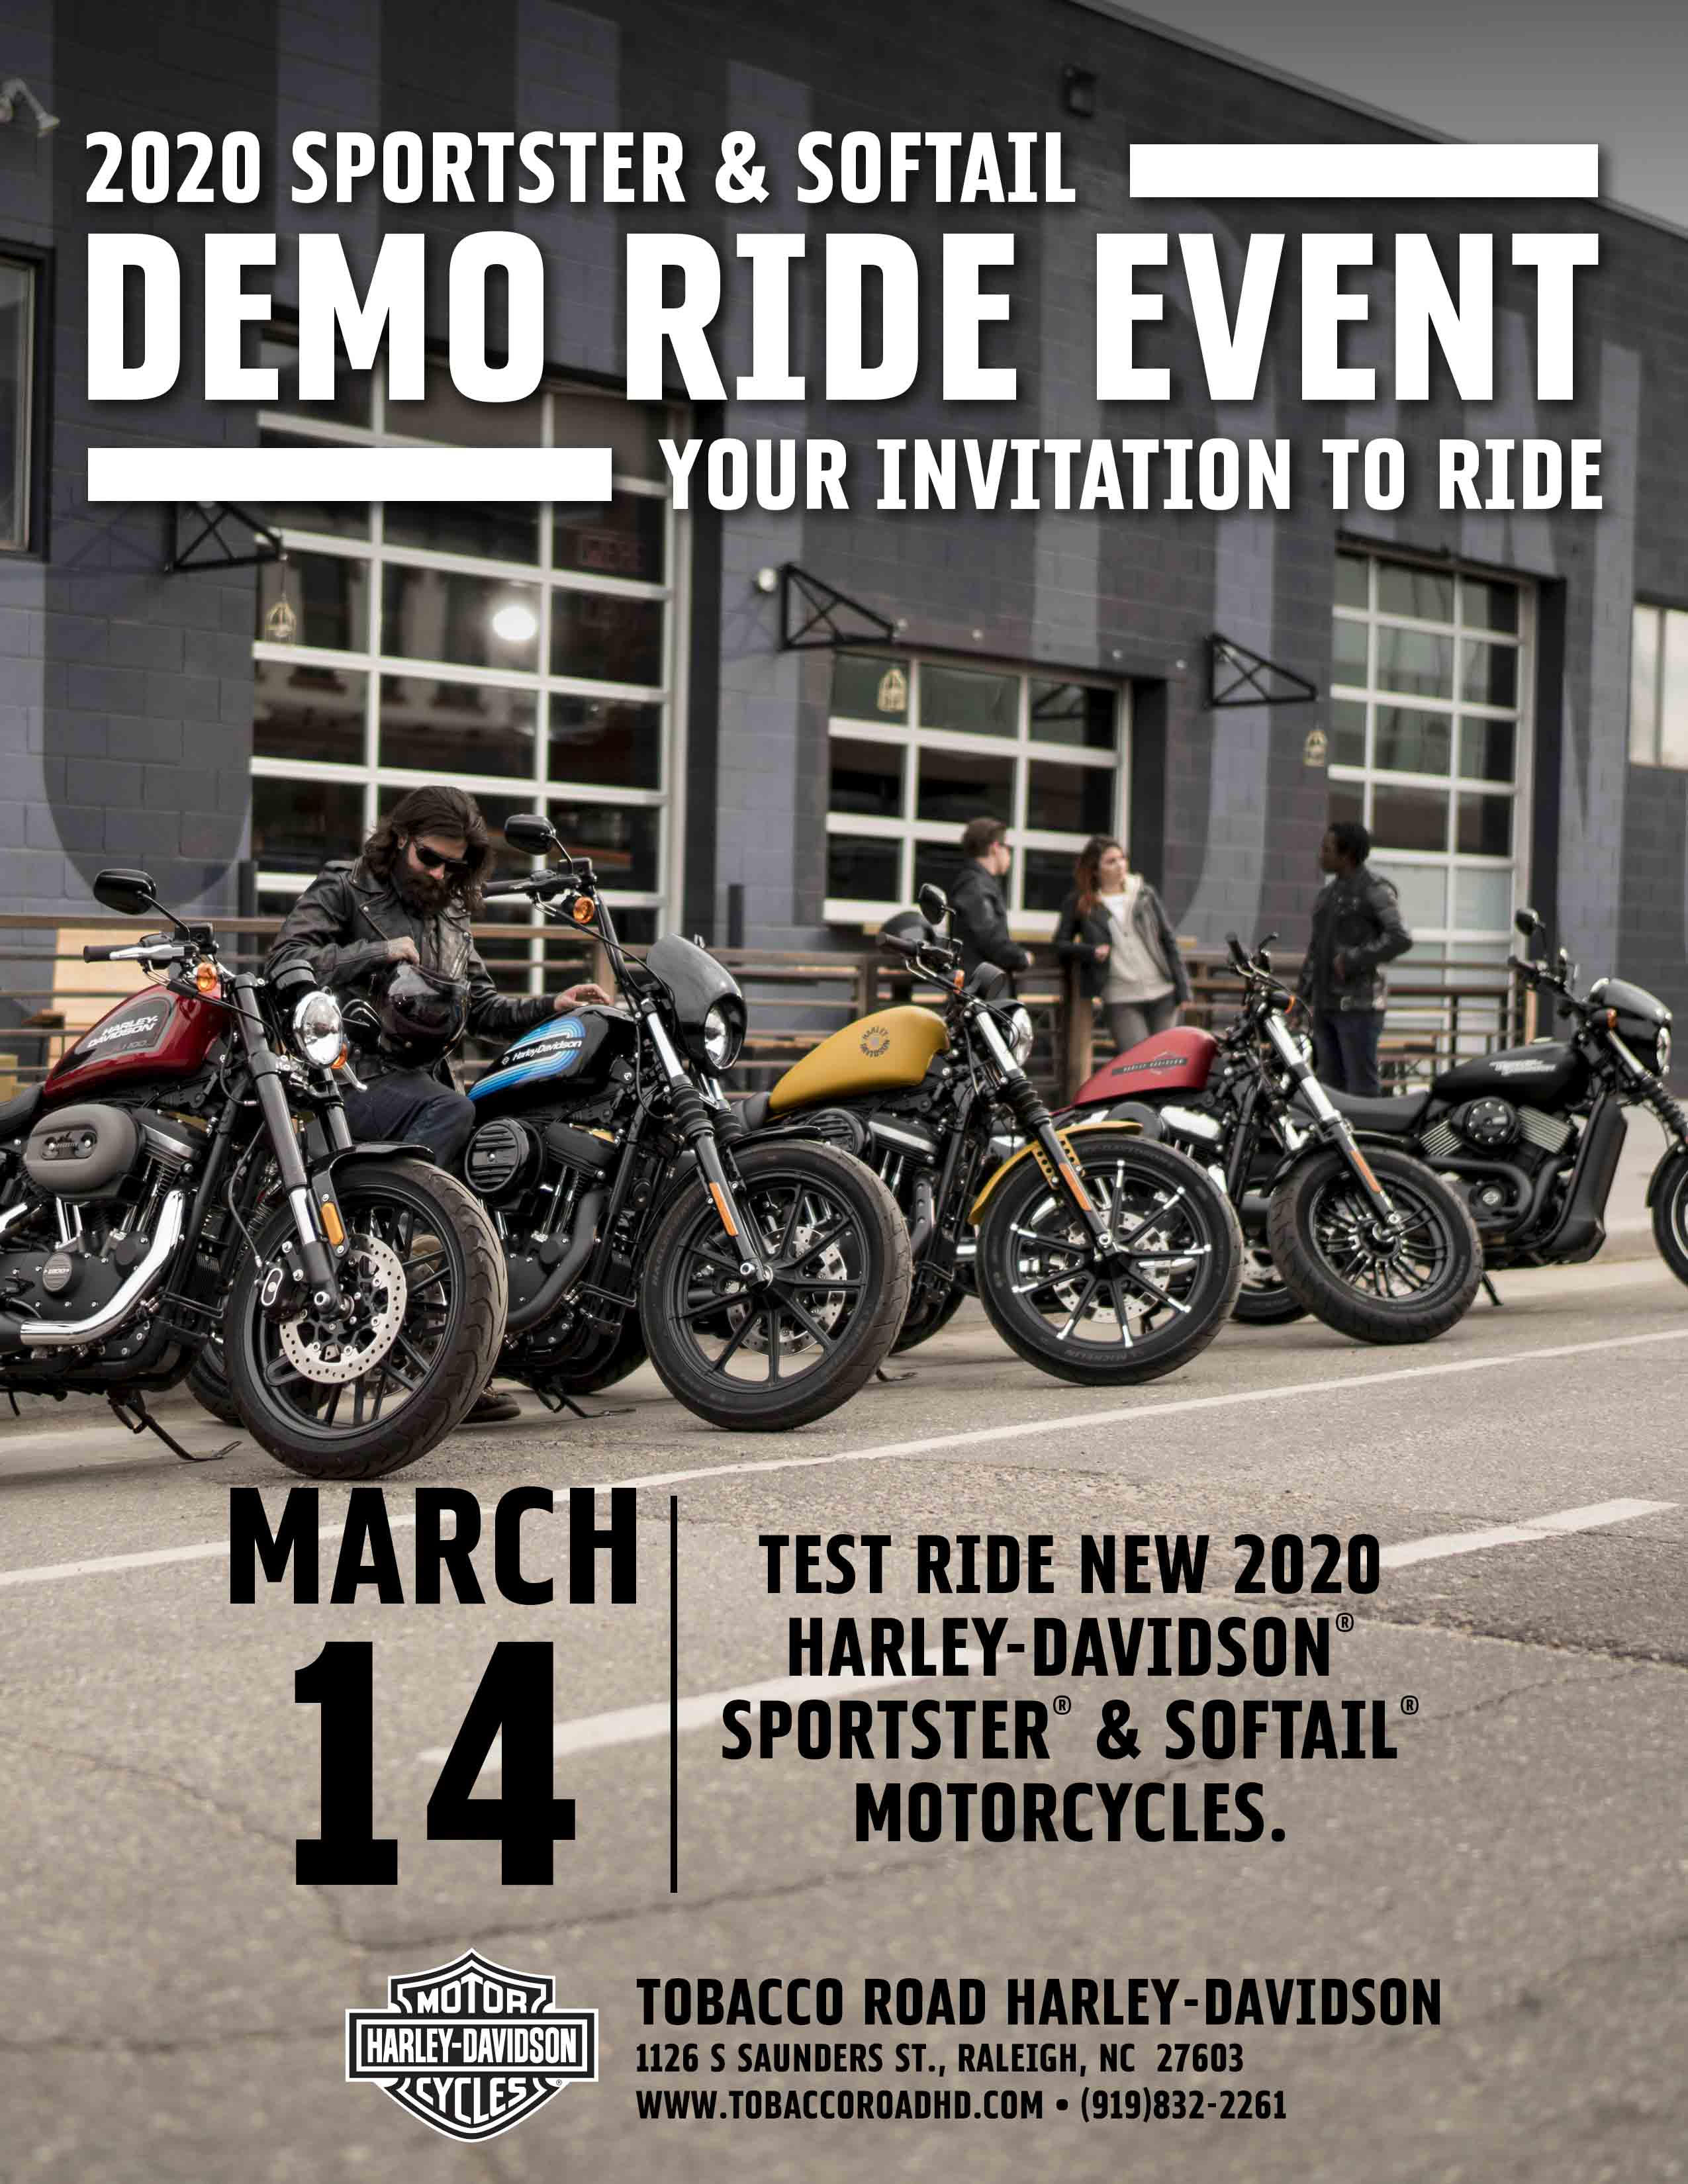 Harley-Davidson Motorcycle Sportster and Softail Demo